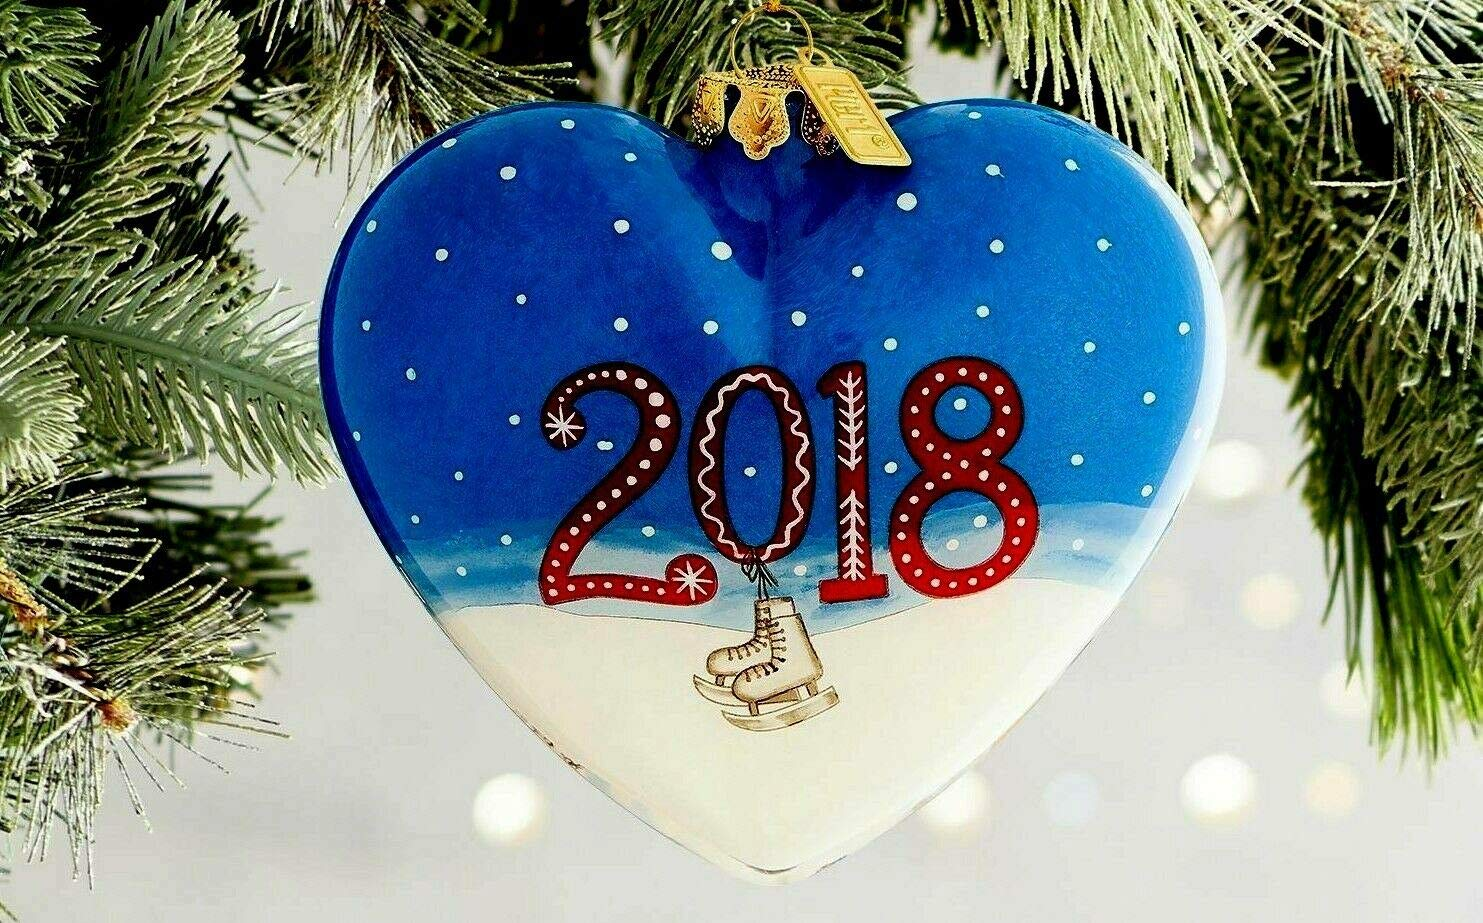 Pier 1 Christmas Ornaments.Pier 1 Imports Li Bien Glass 2018 Dated 4 Heart Shaped Skating Rabbits Li Bien Christmas Ornament With Box